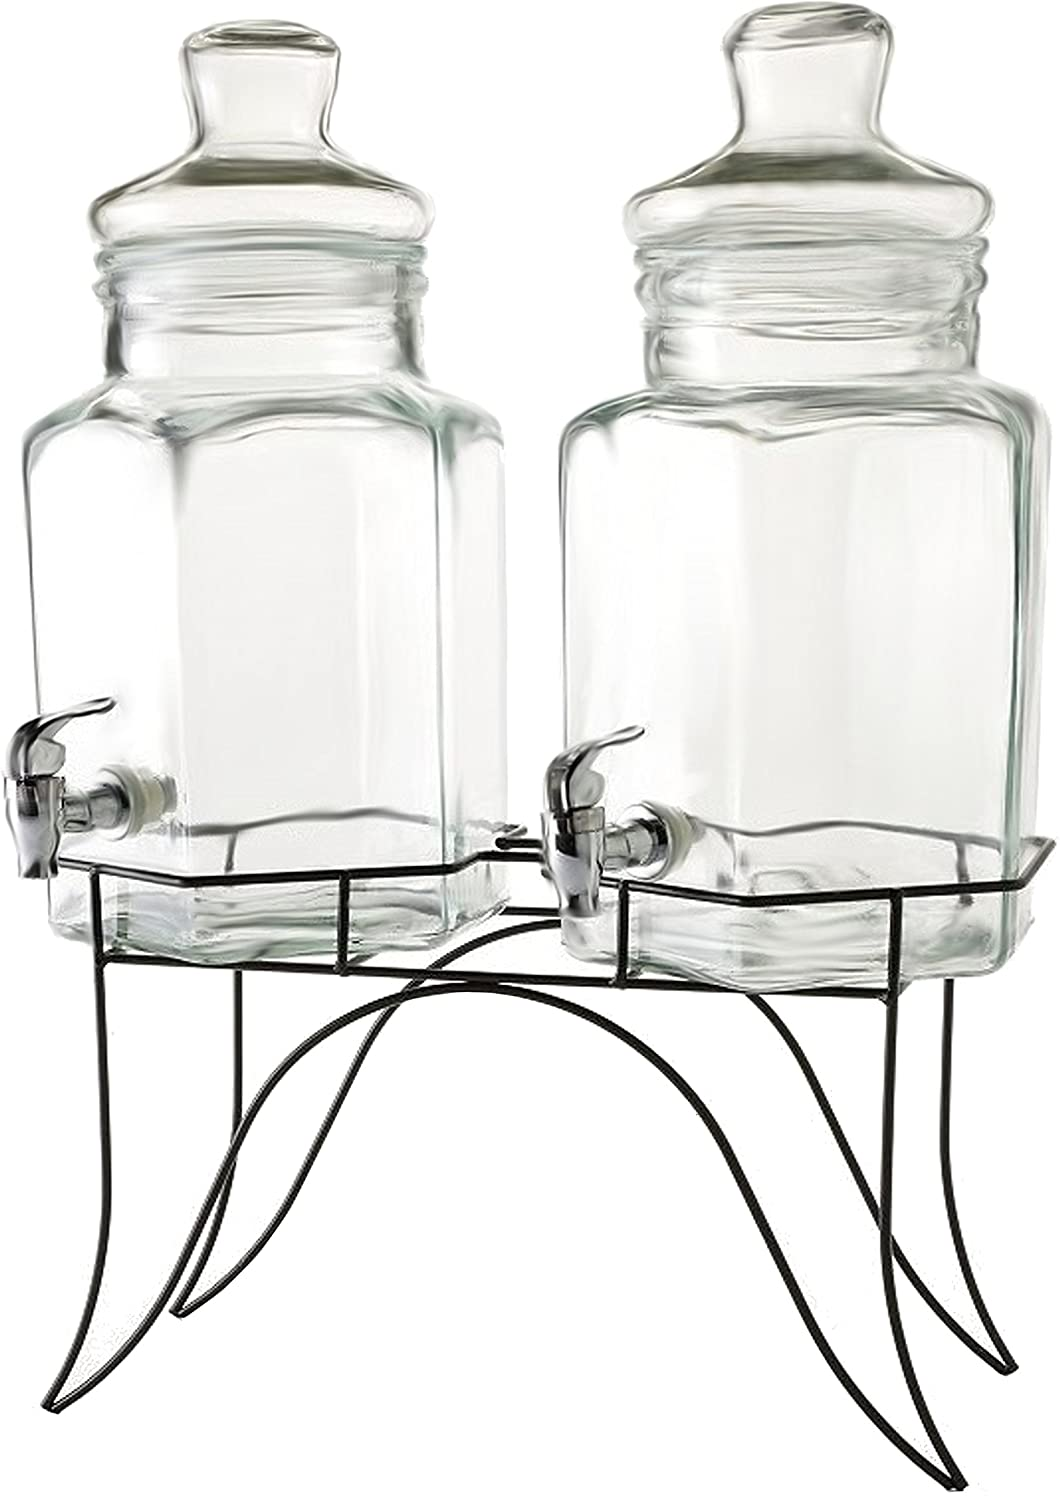 Circleware 66916 Double Beverage Dispensers with Stand and Spigot, Fun Party New Entertainment Home Kitchen Glassware Cold Drink Pitcher for Water, Punch & Iced Tea, 1.3/2.6 Gallon, Dopier 81vanjbpLaL._SL1500_